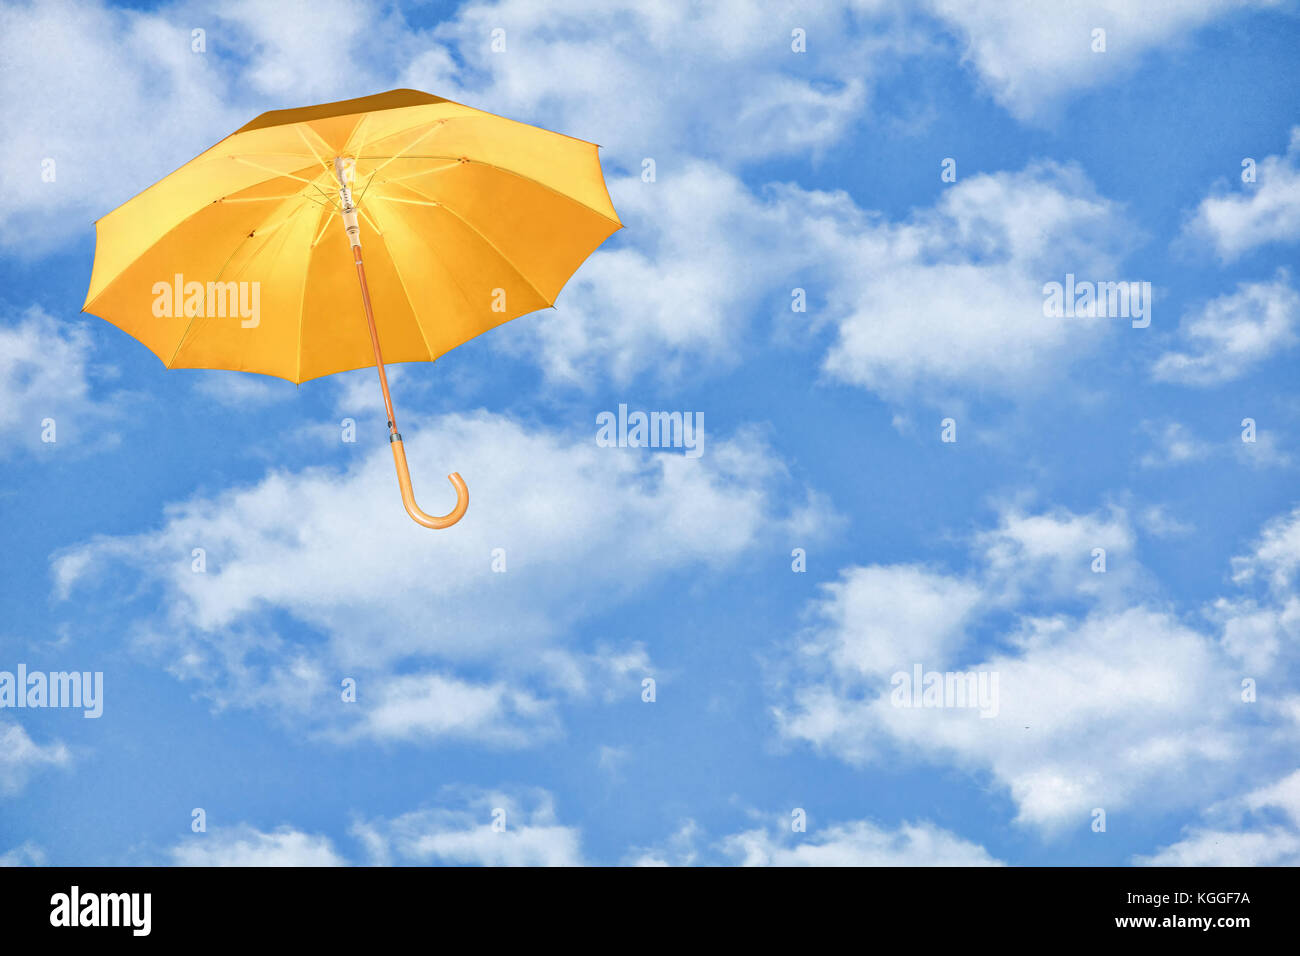 Mary Poppins Umbrella.Yellow umbrella flies in sky against of white clouds.Wind of change concept. - Stock Image